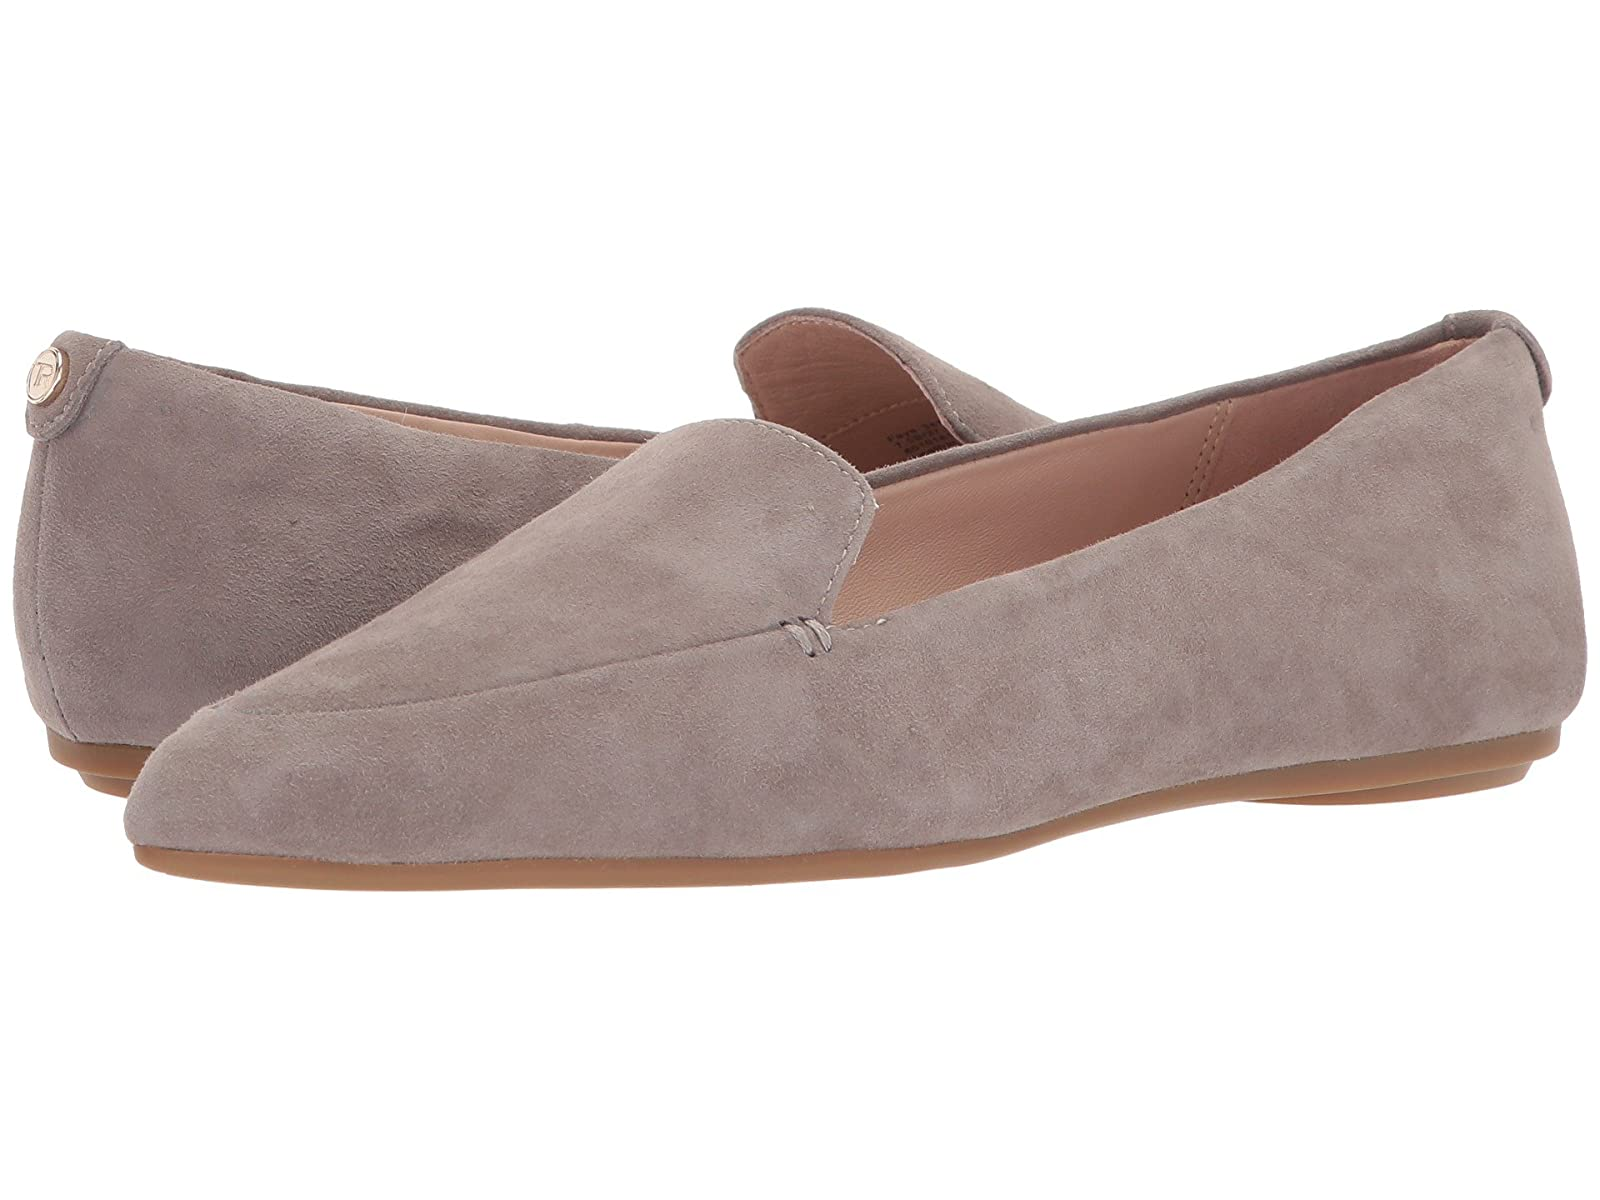 Taryn Rose FayeAtmospheric grades have affordable shoes